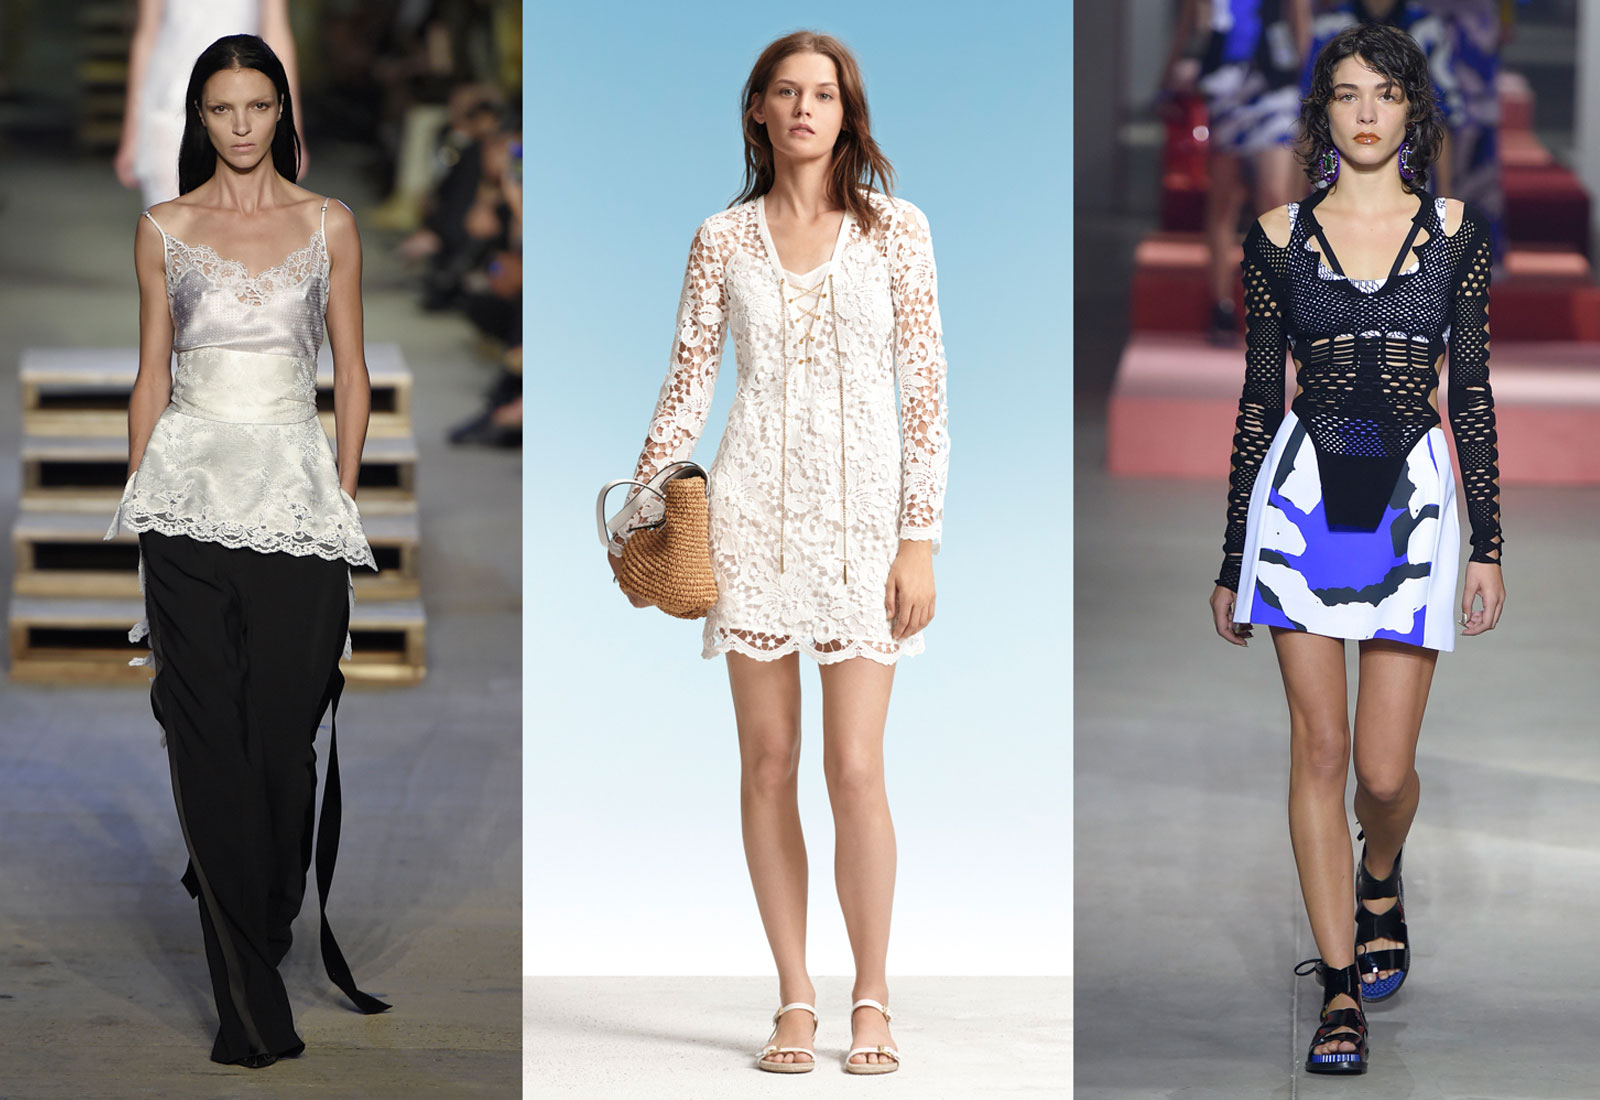 spring summer 2016 peekaboo fashion trend from givenchy michael kors and kenzo 1600 x 1100